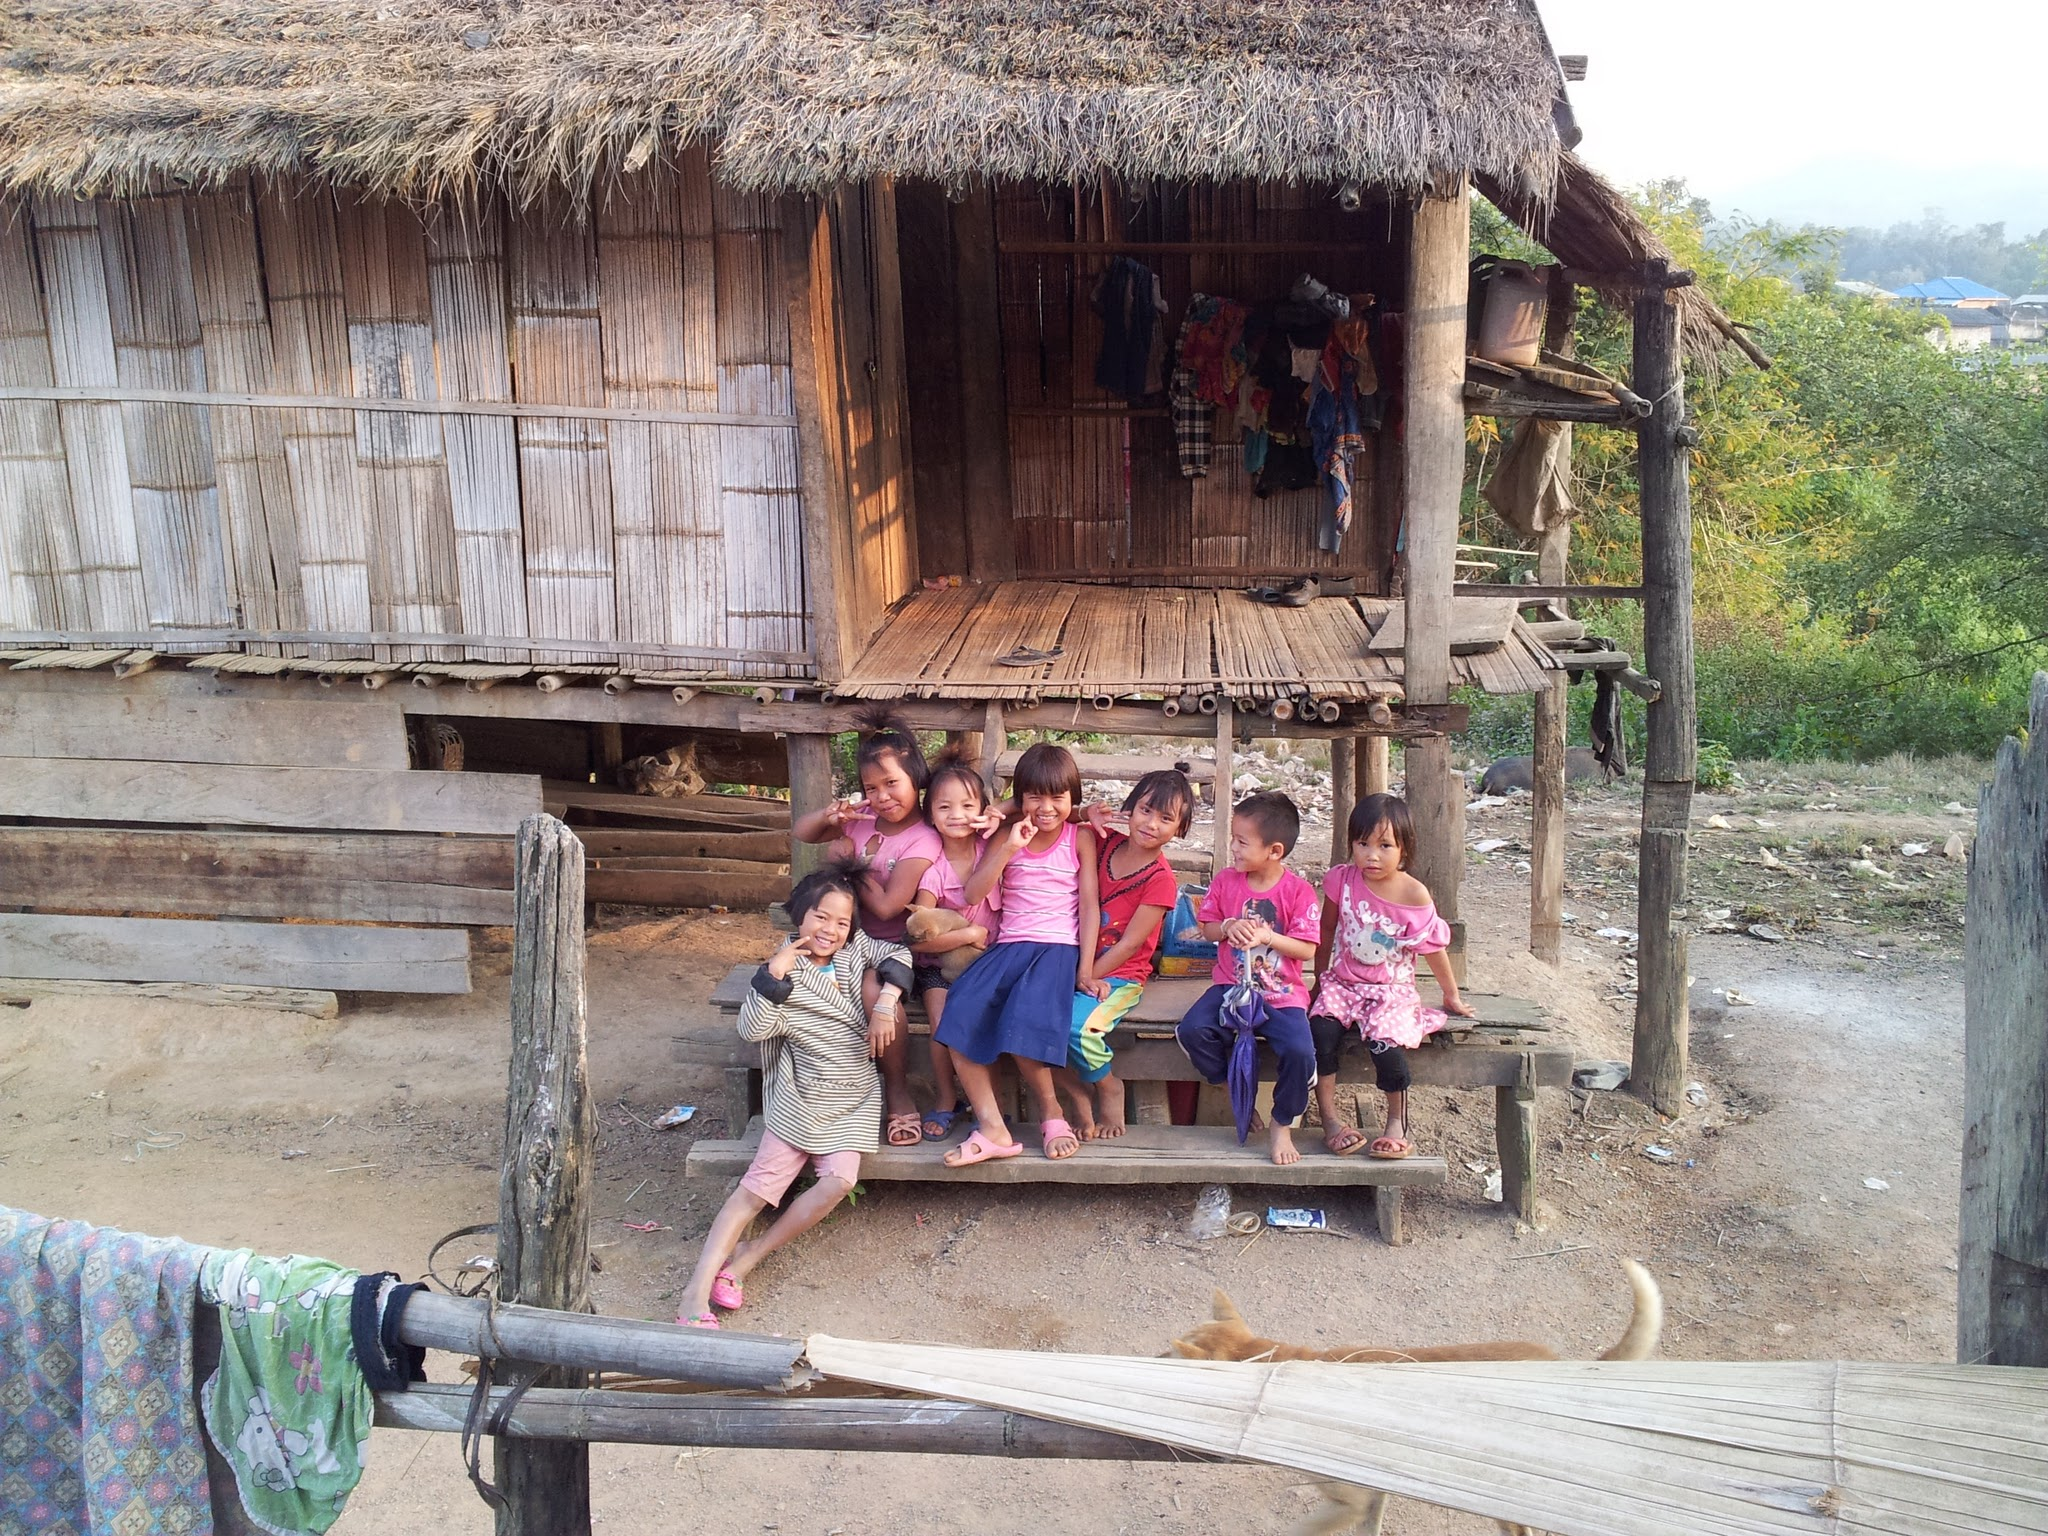 Village children